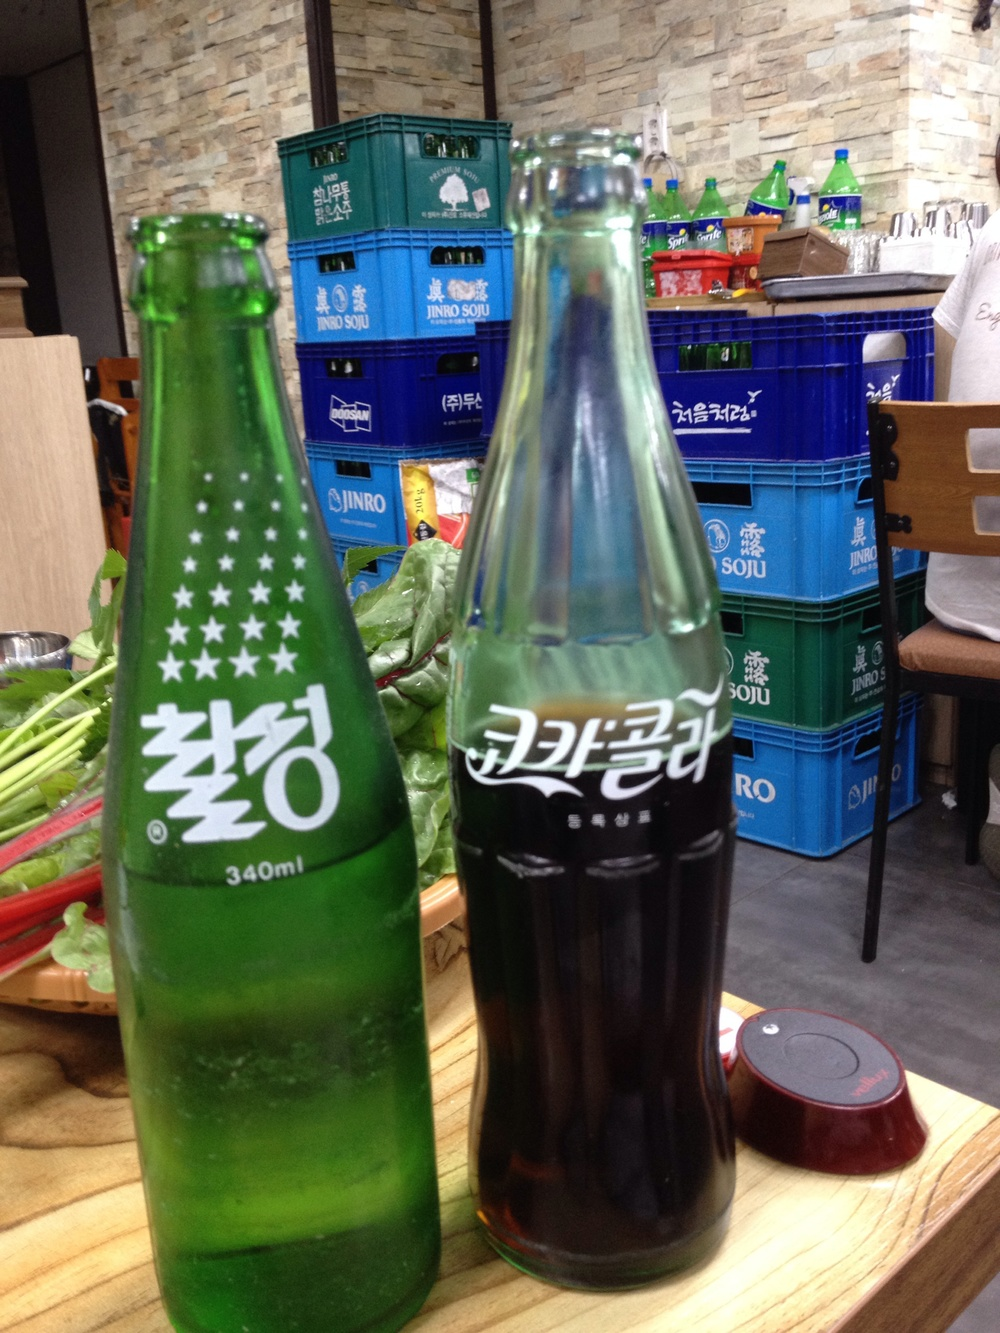 Cute old school glass pop bottles. Chilseng Cider and Coca-Cola.